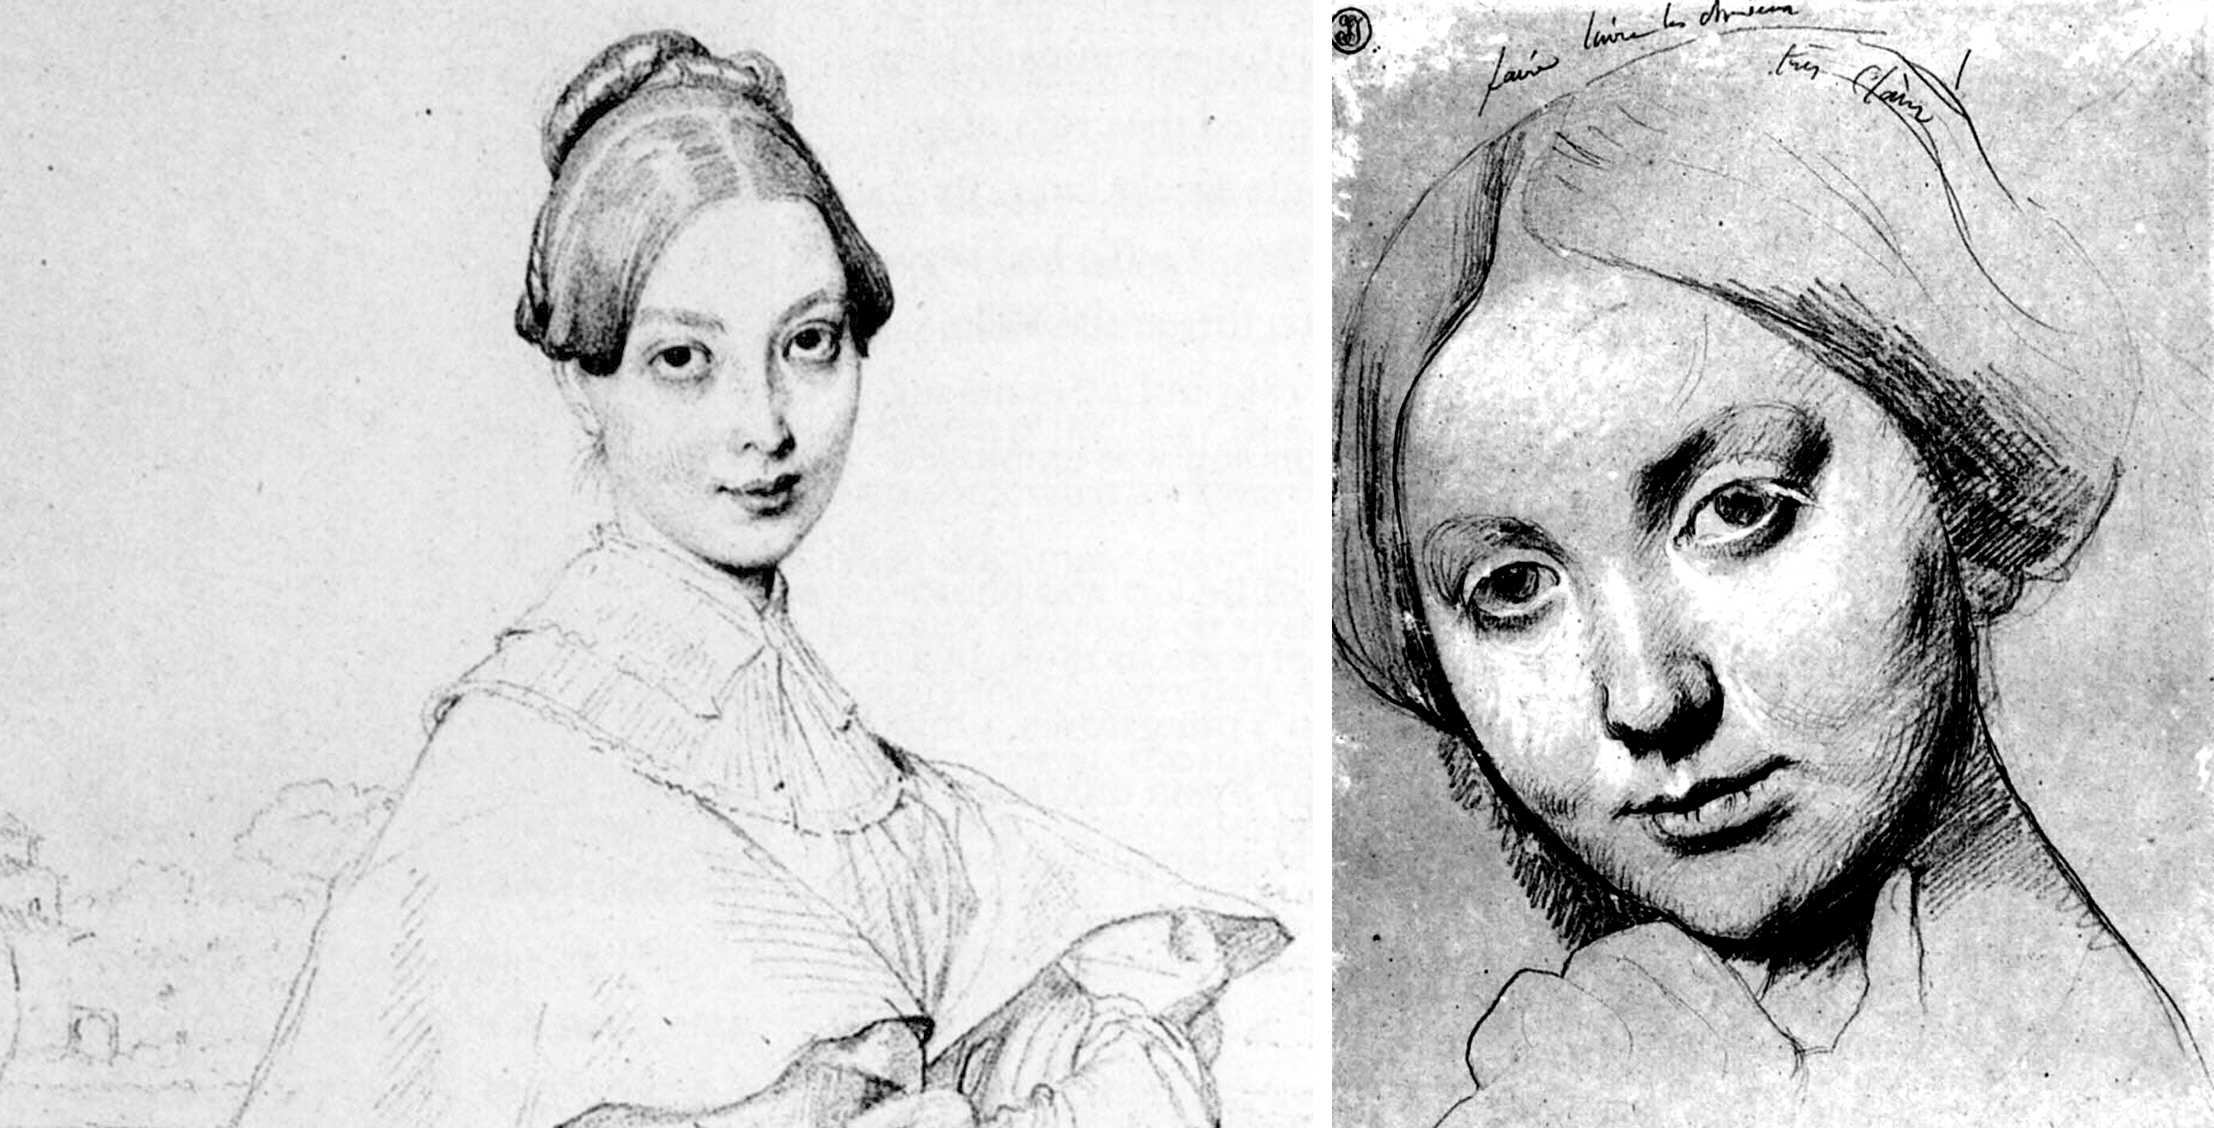 sketches by Jean Auguste Dominique Ingres